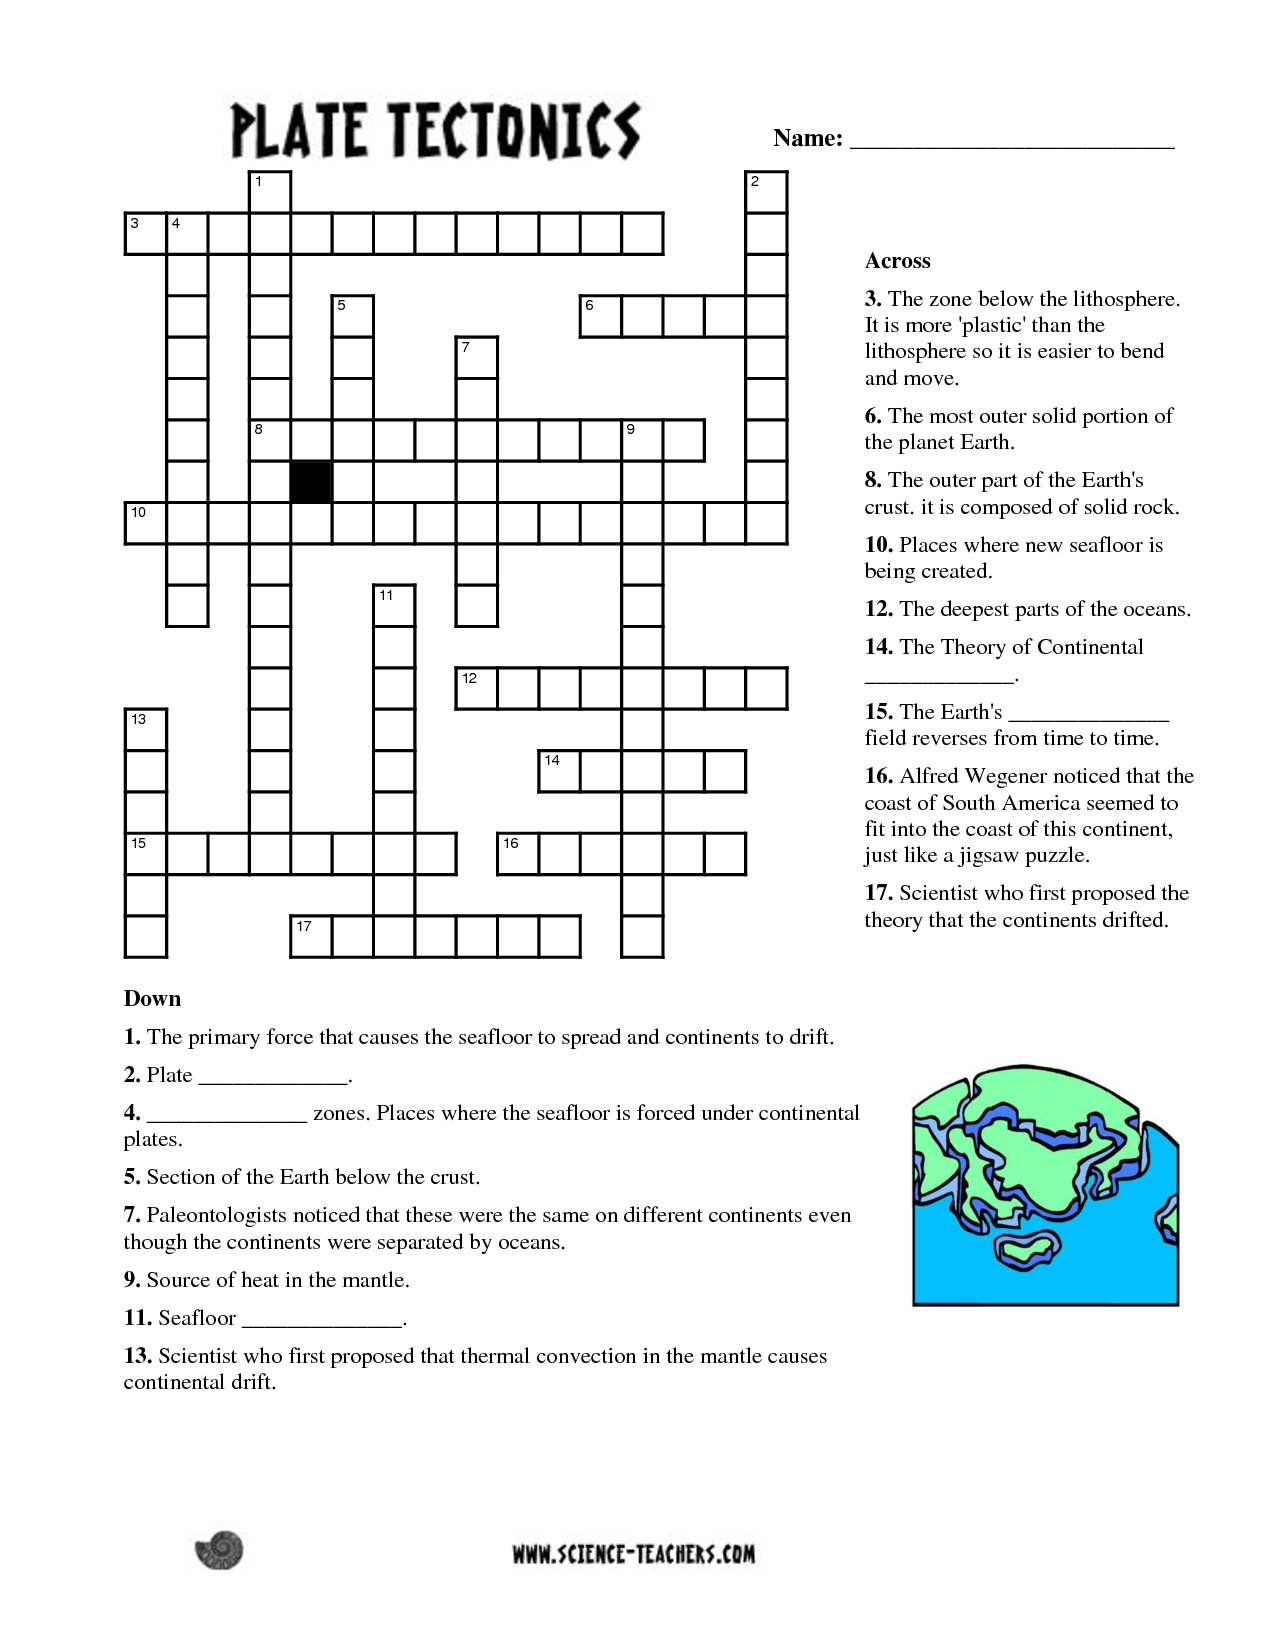 planets crossword puzzle worksheet pics about space fun science pinterest worksheets. Black Bedroom Furniture Sets. Home Design Ideas